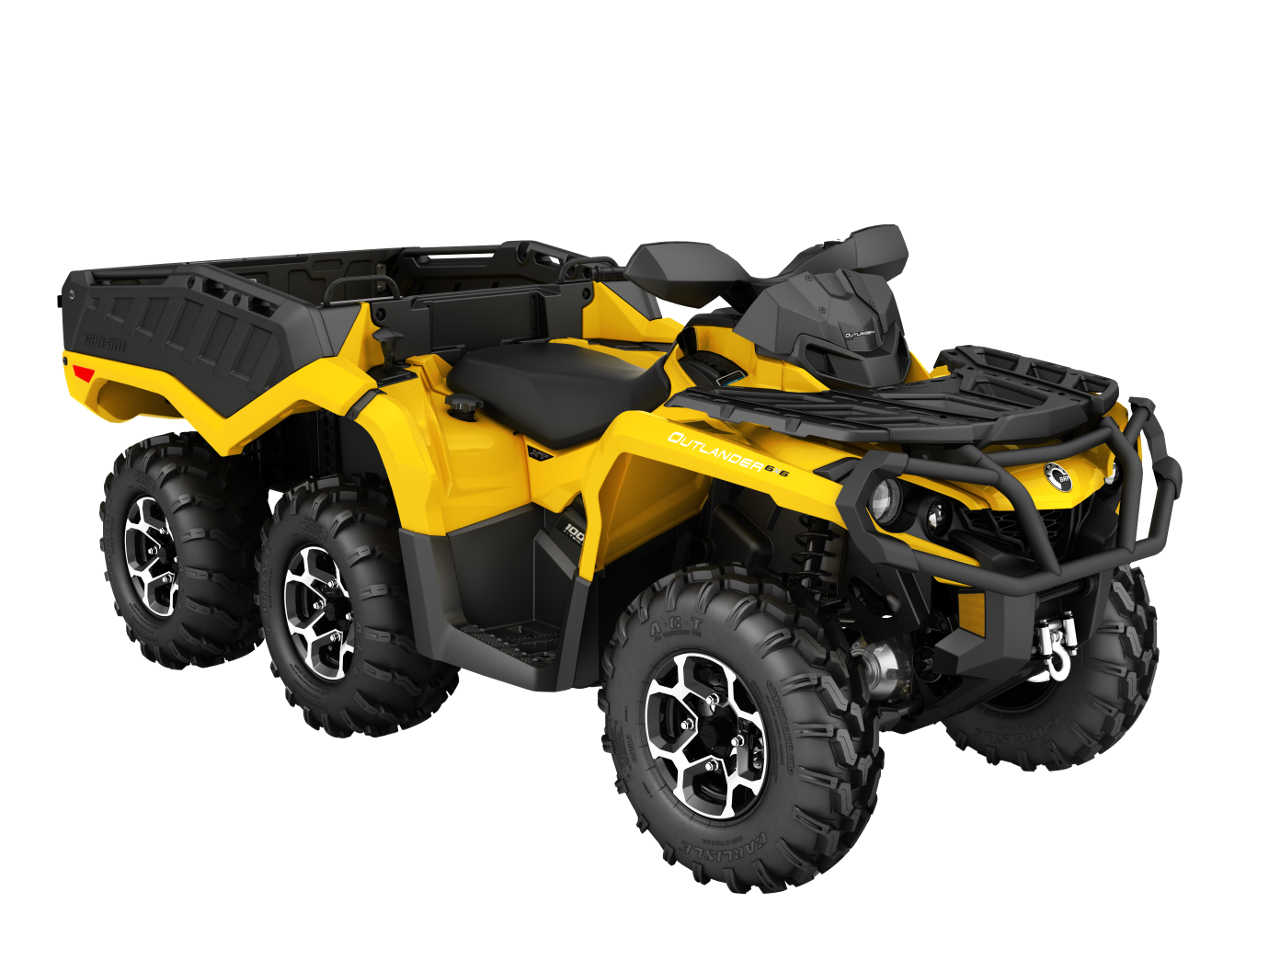 2016 Can Am Outlander 6x6 Family Atv Illustrated